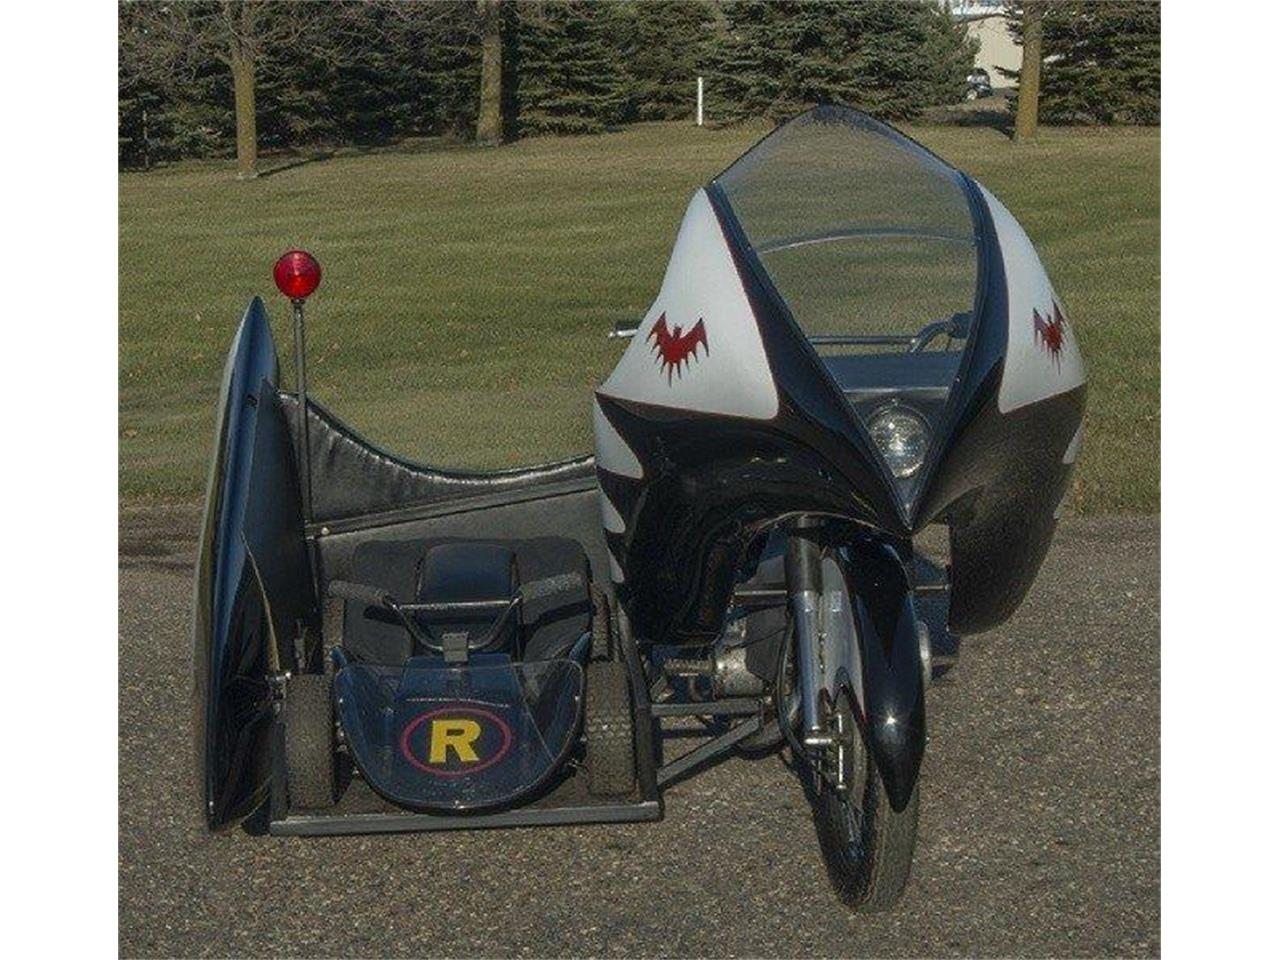 Yamaha Atv For Sale >> 1967 Yamaha Atv For Sale In Rogers Mn Classiccarsbay Com